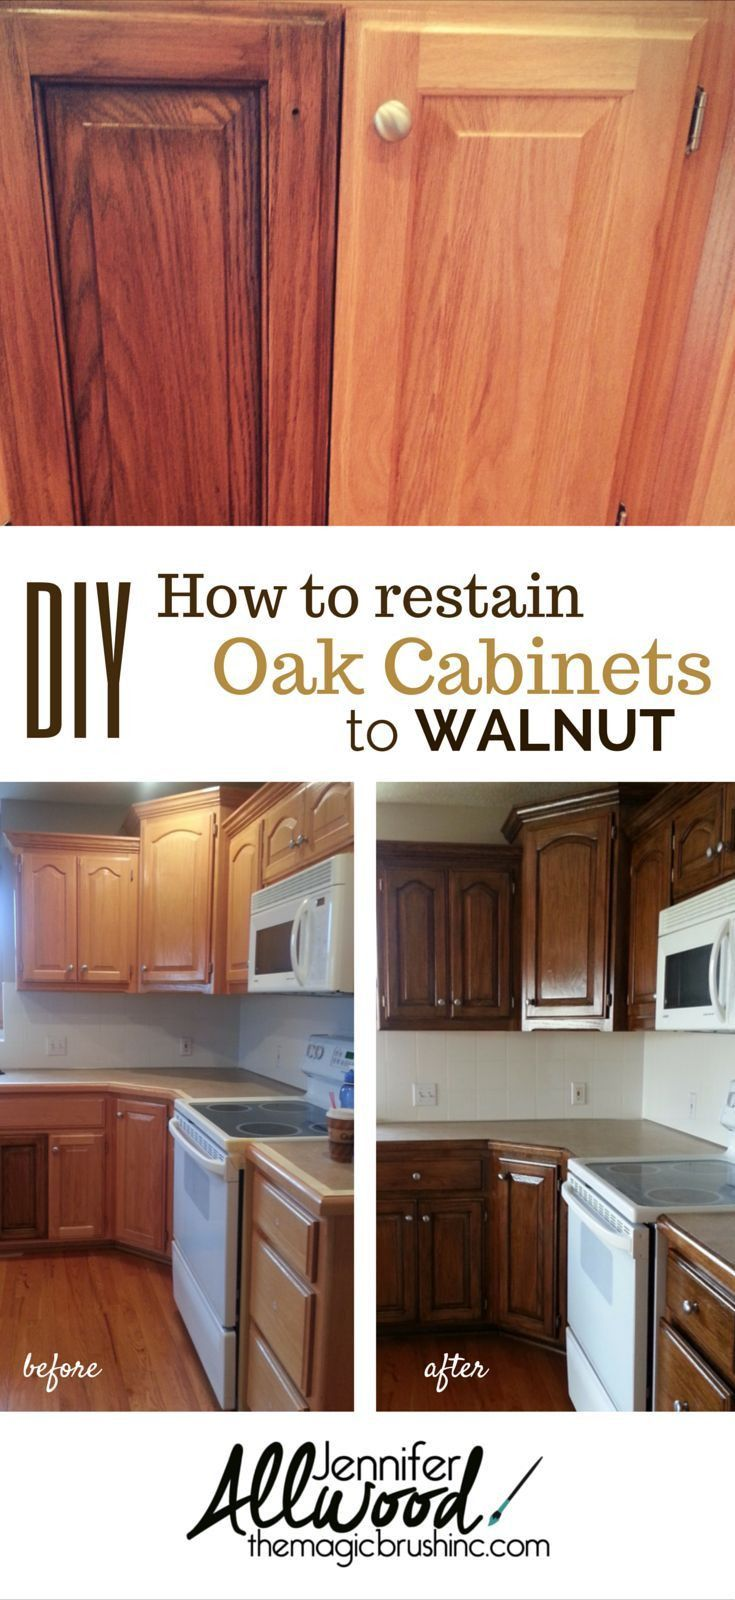 55 How To Restain Cabinets Darker Small Kitchen Island Ideas With Seating Check More At Http Stained Kitchen Cabinets Oak Kitchen Cabinets Kitchen Cabinets